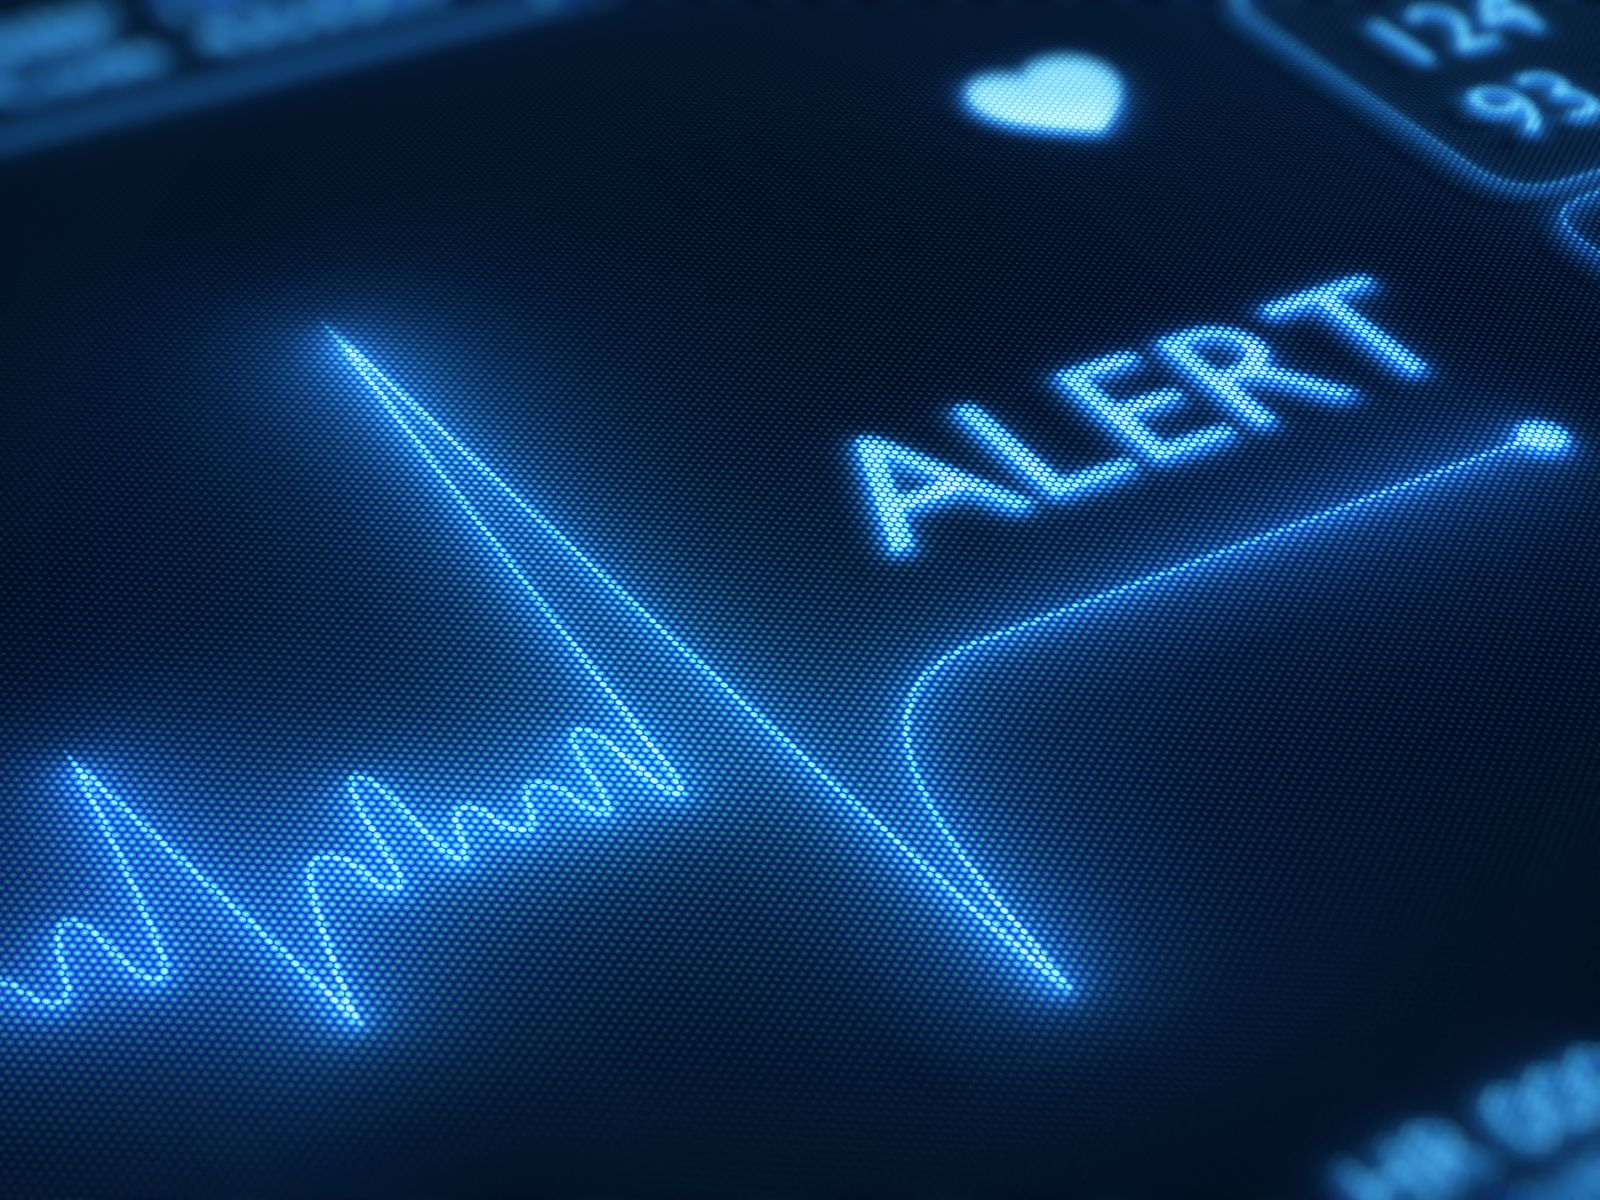 Stroke after a heart attack: What's the risk? - Harvard Health